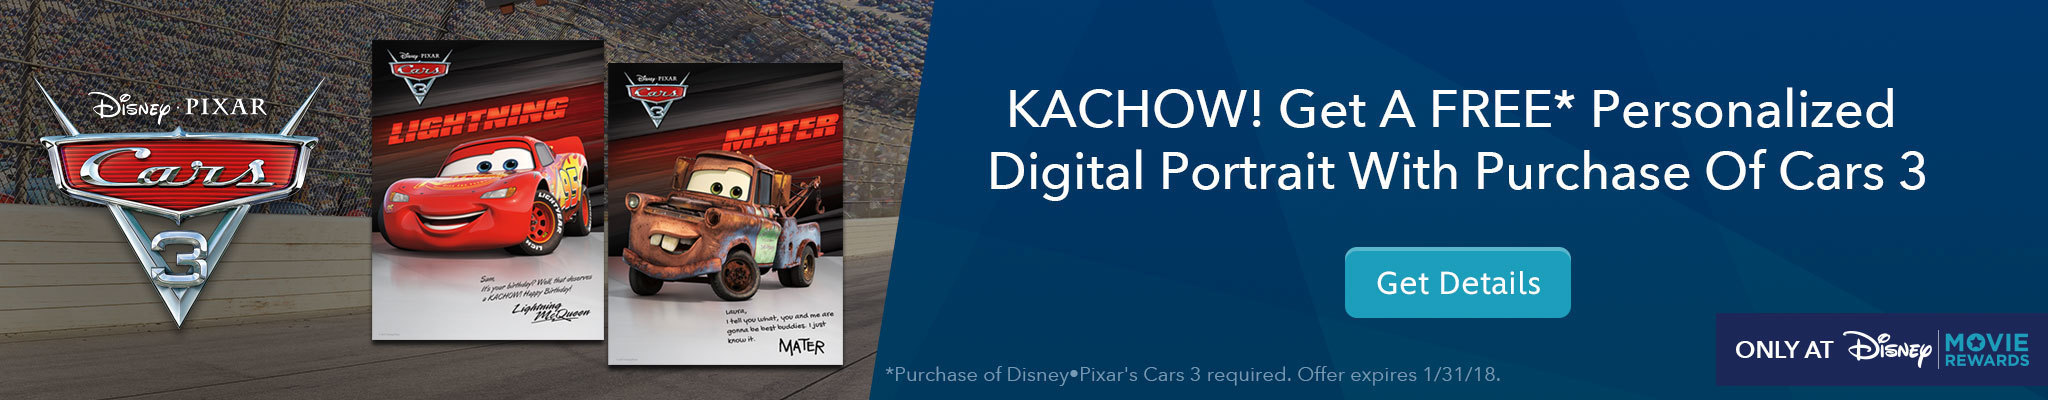 Get a free personalized digital portrait with Purchase of Cars 3